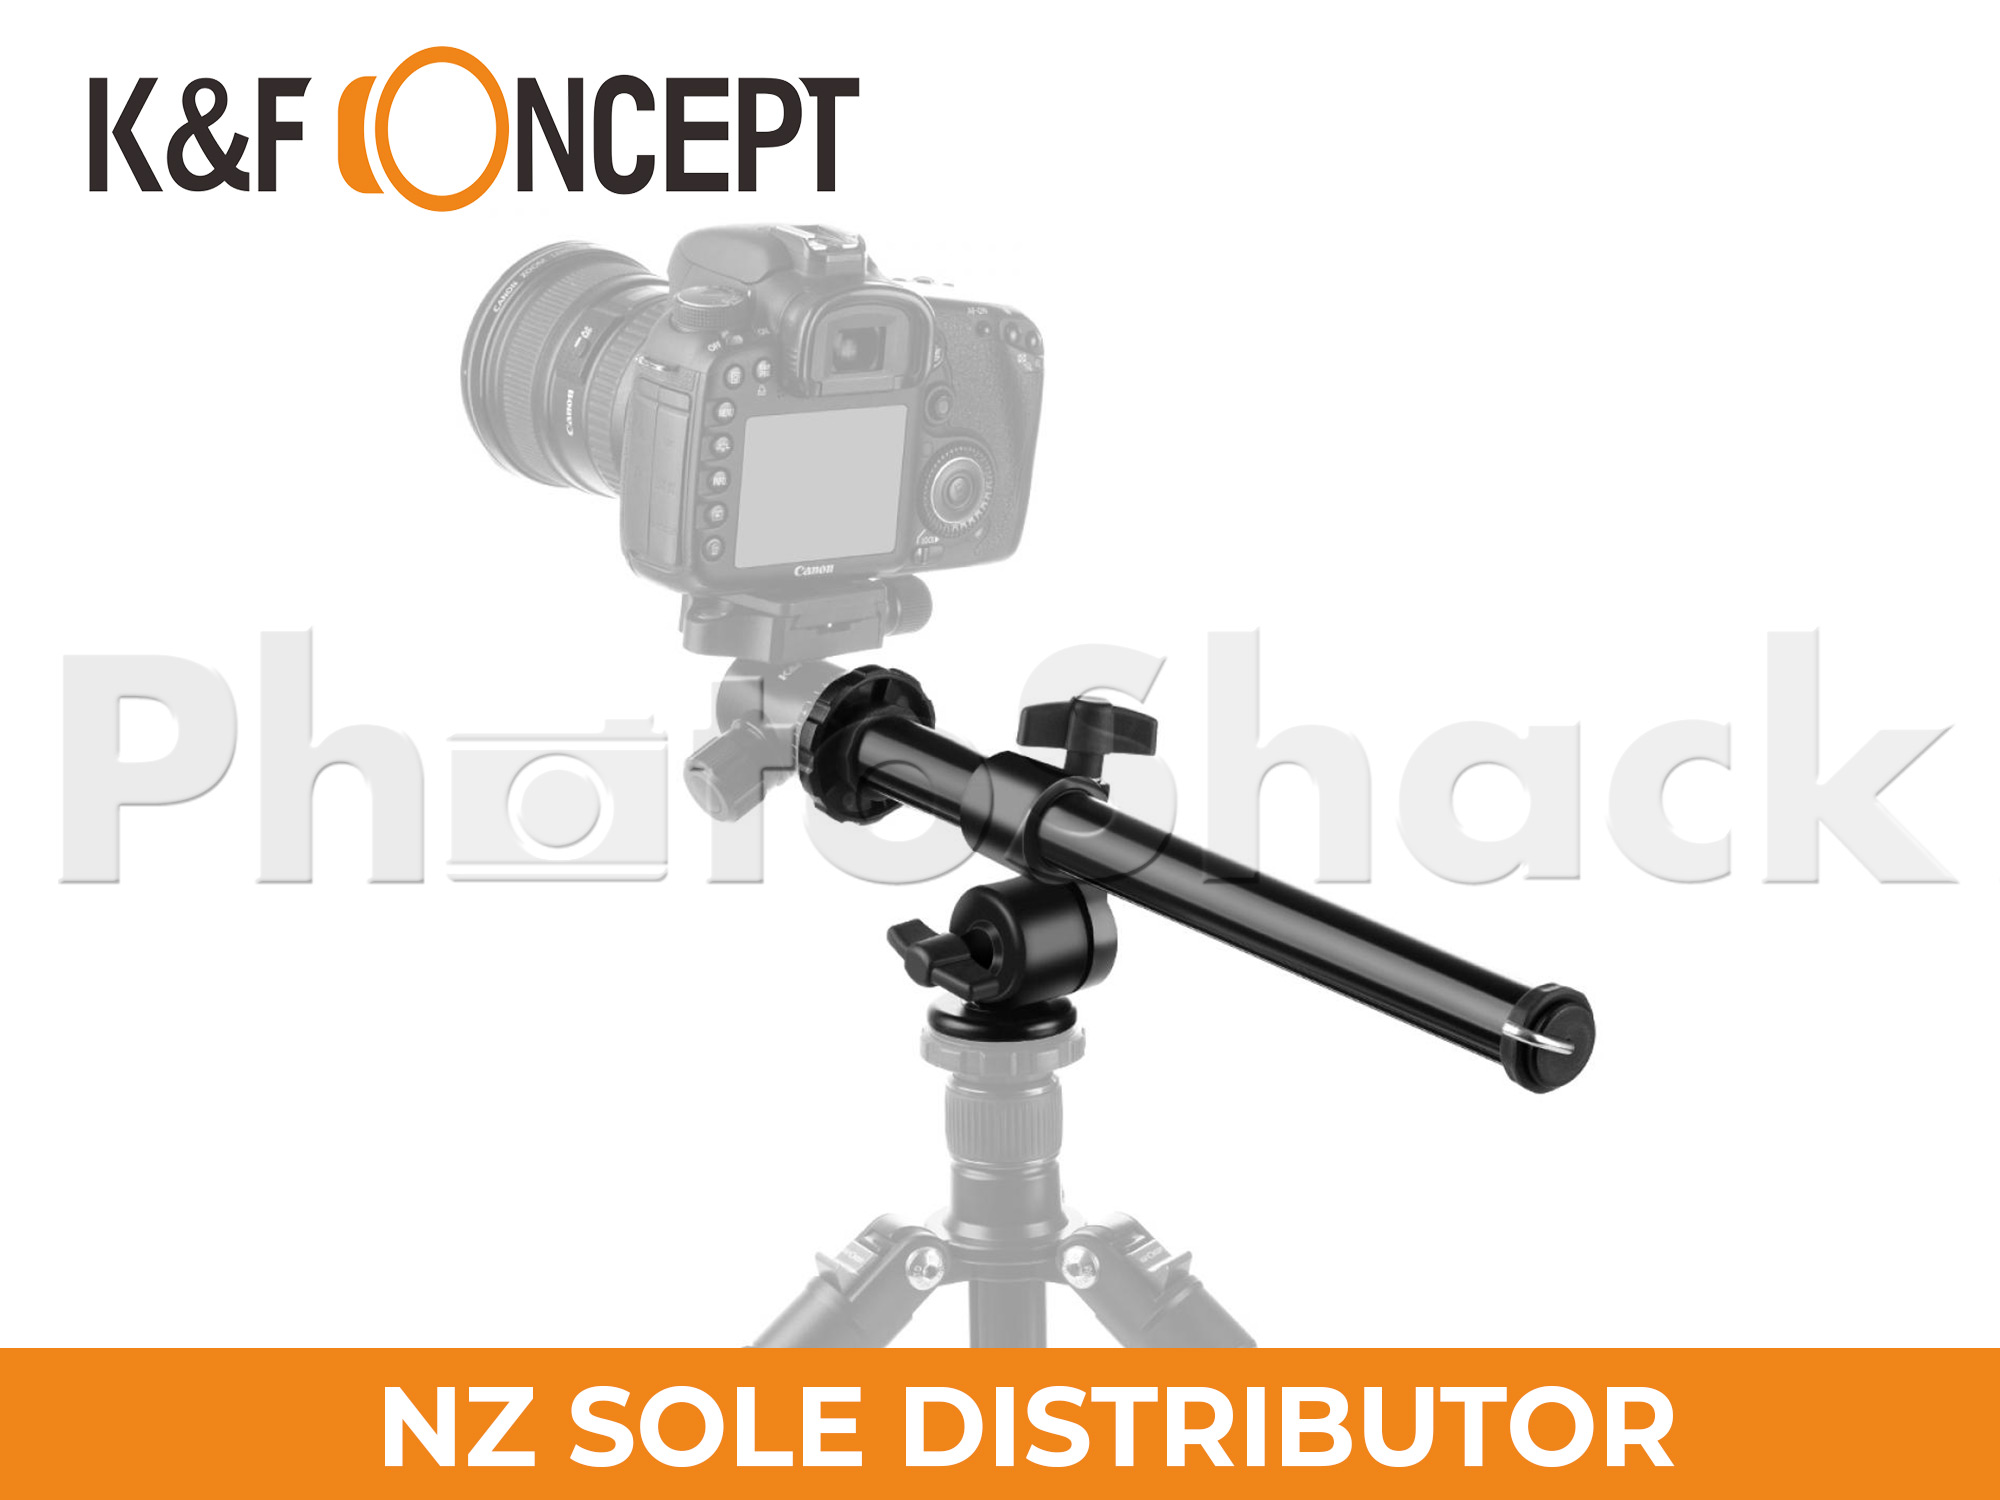 K&F Concept Rotatable Multi-angle Center Column for Camera Tripod